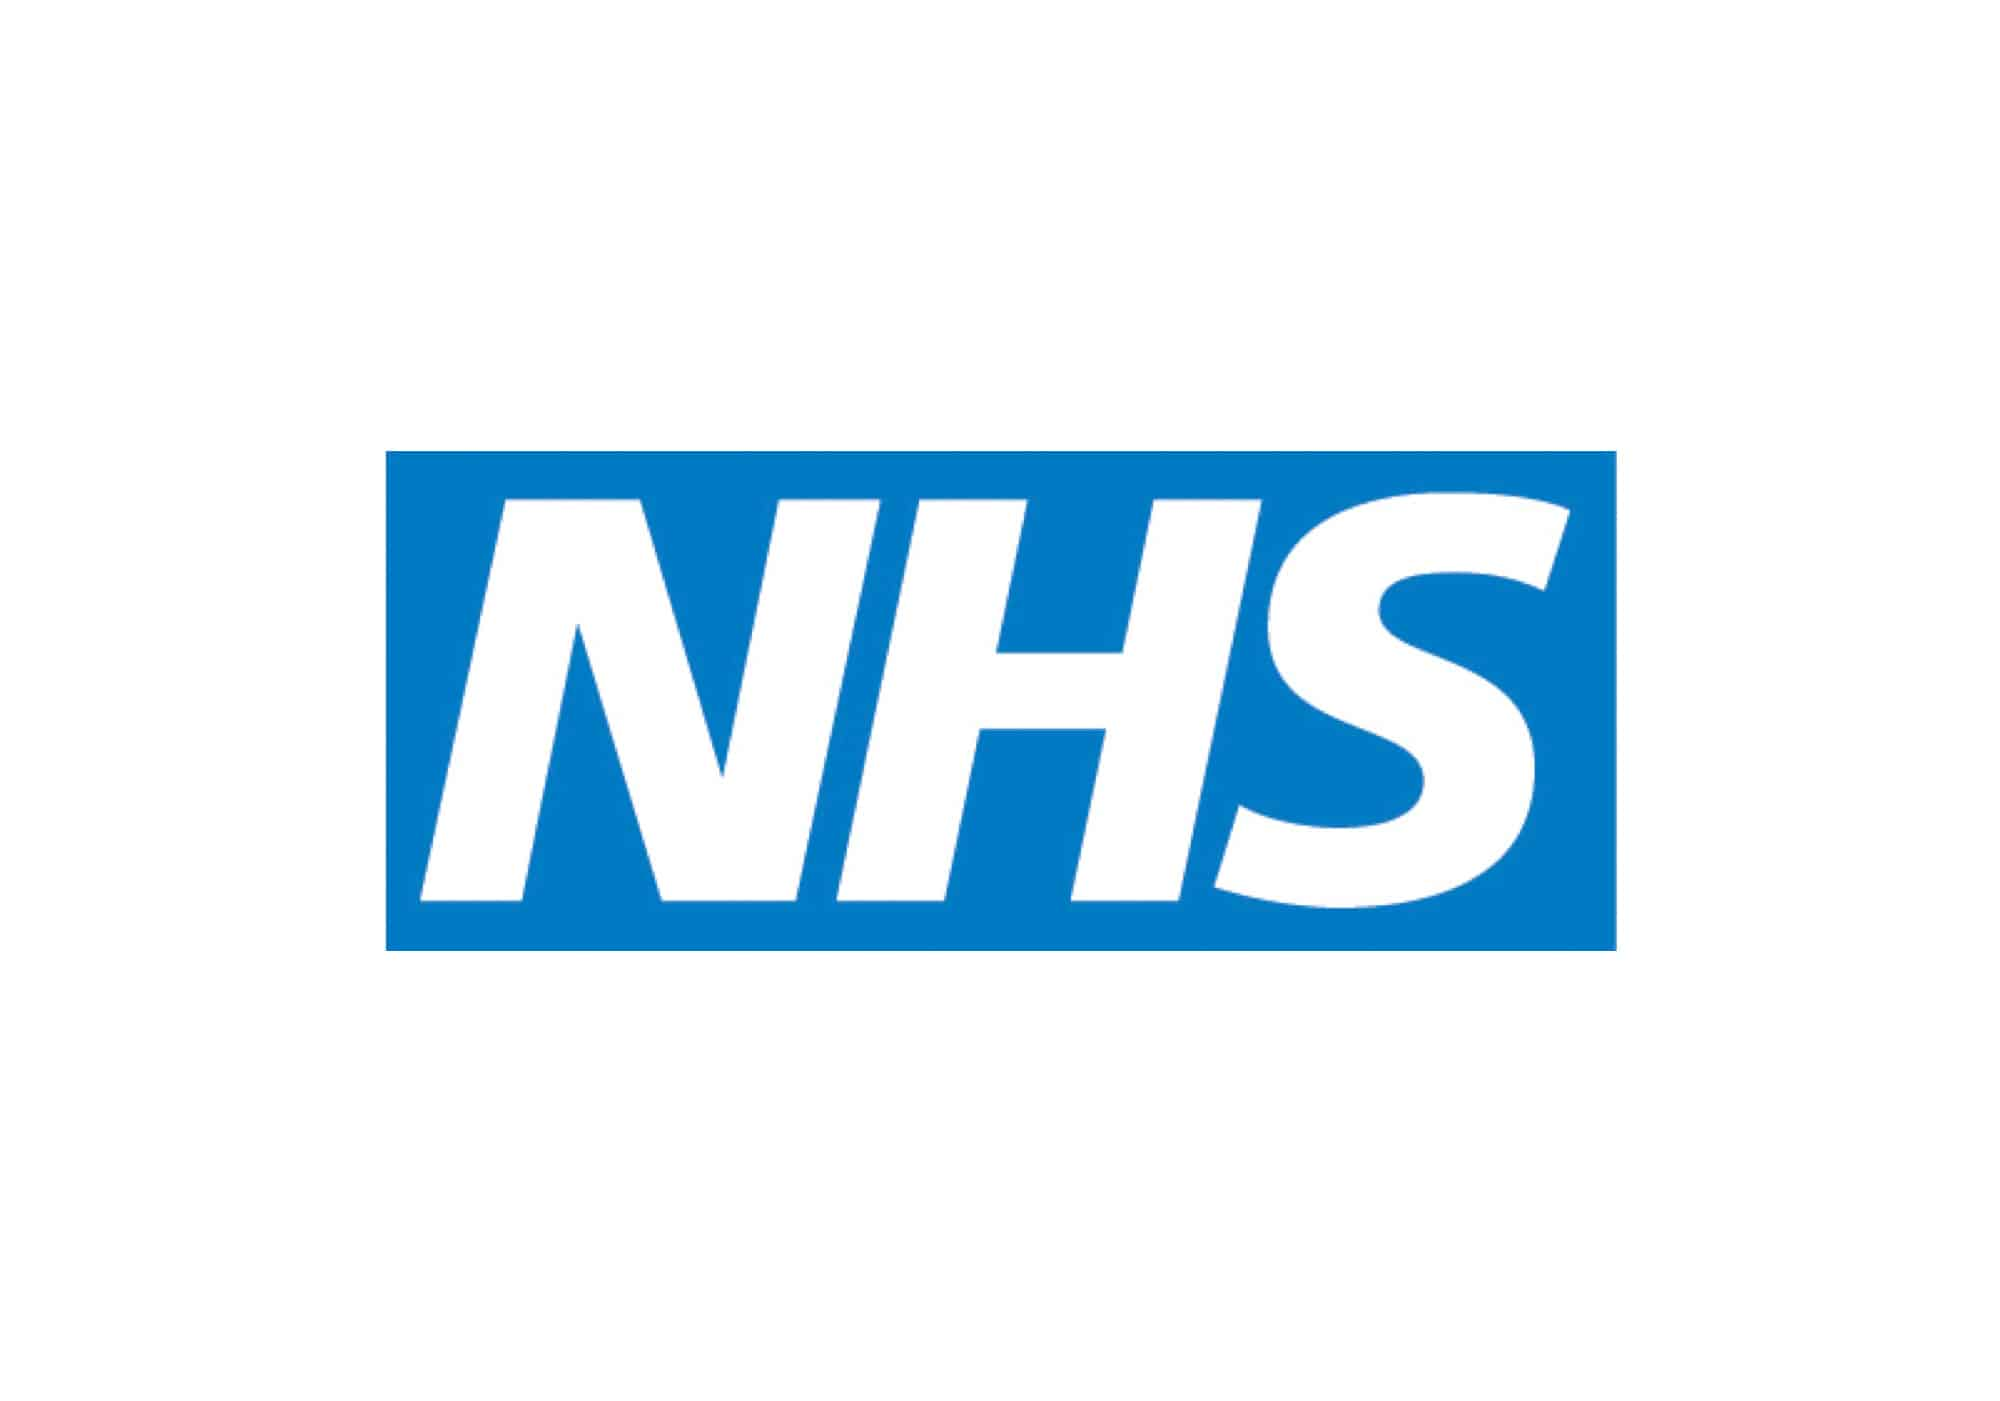 Video production Liverpool web logo - nhs